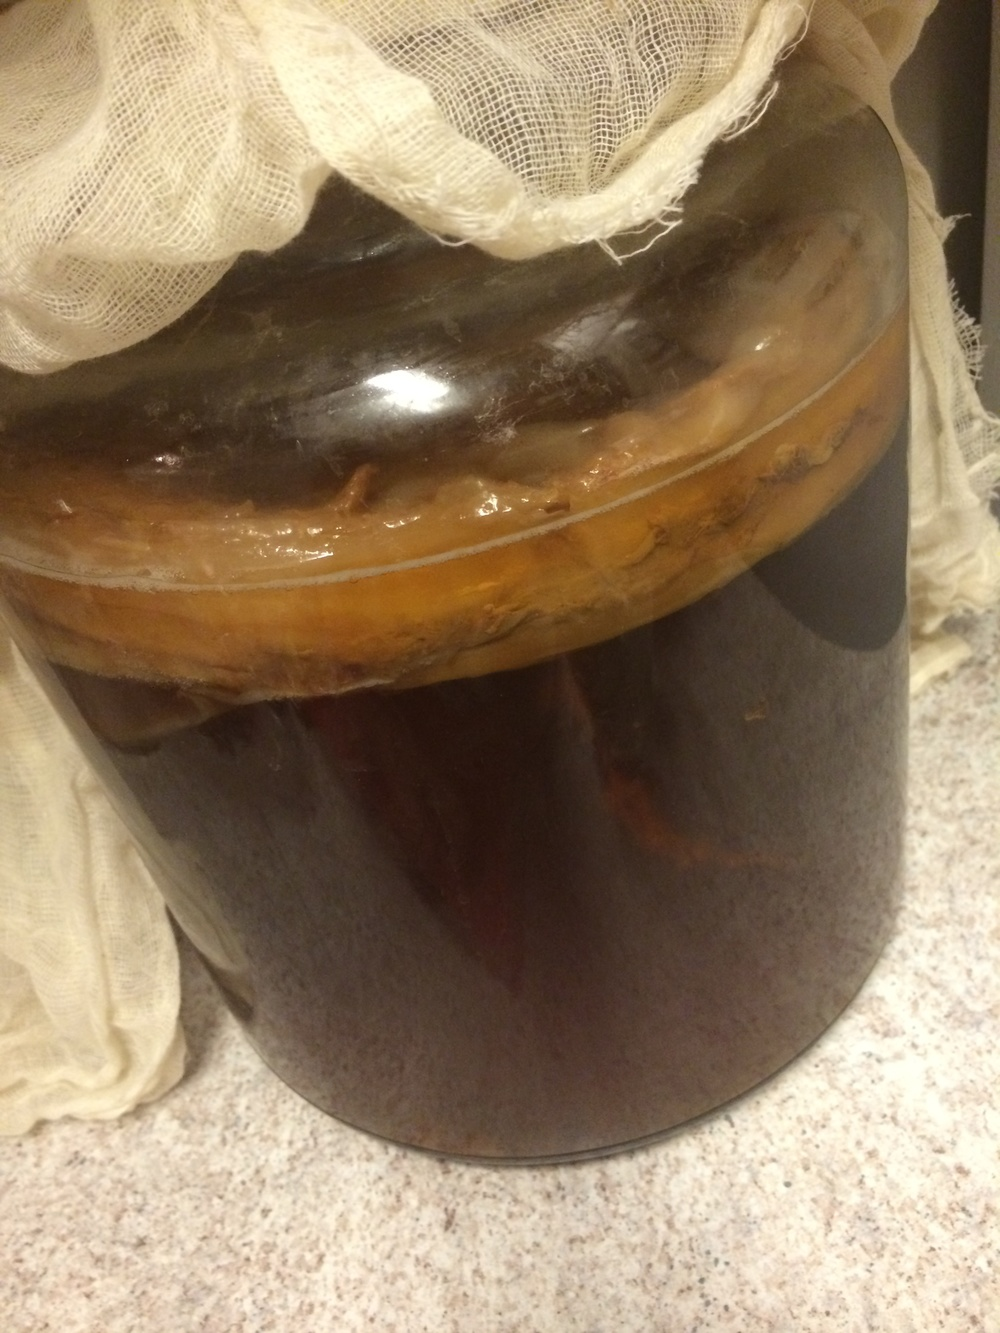 SCOBY's aren't the prettiest things